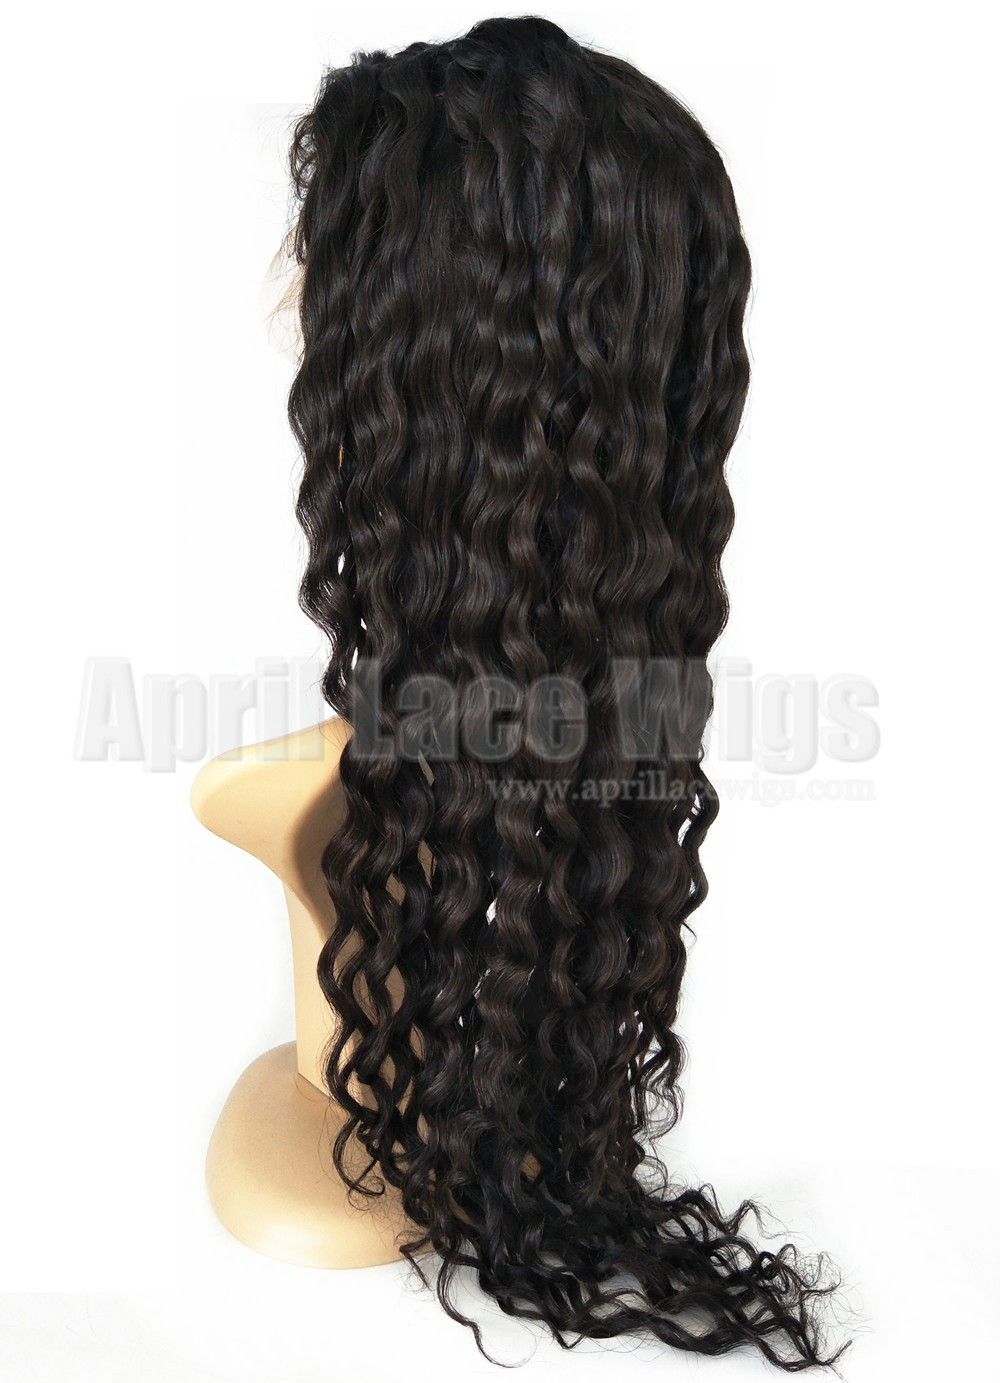 Chinese virgin Curly silk top full lace wig